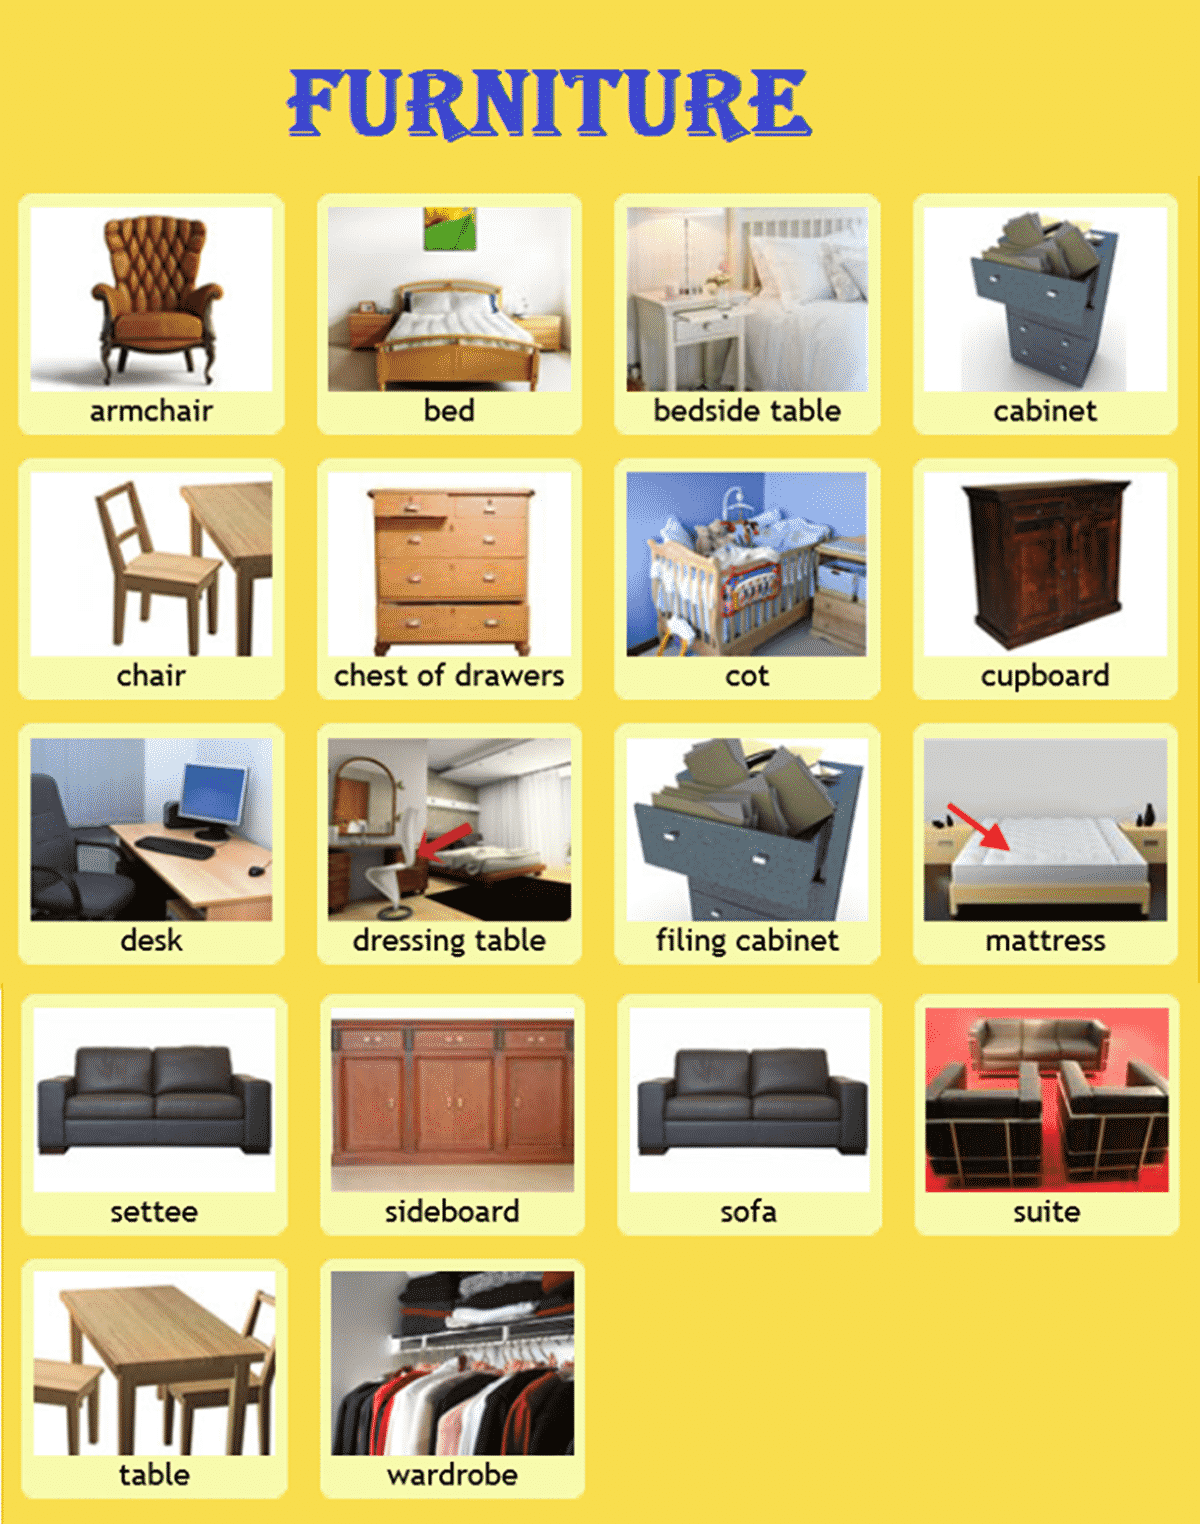 Furniture Vocabulary: 250+ Items Illustrated 18